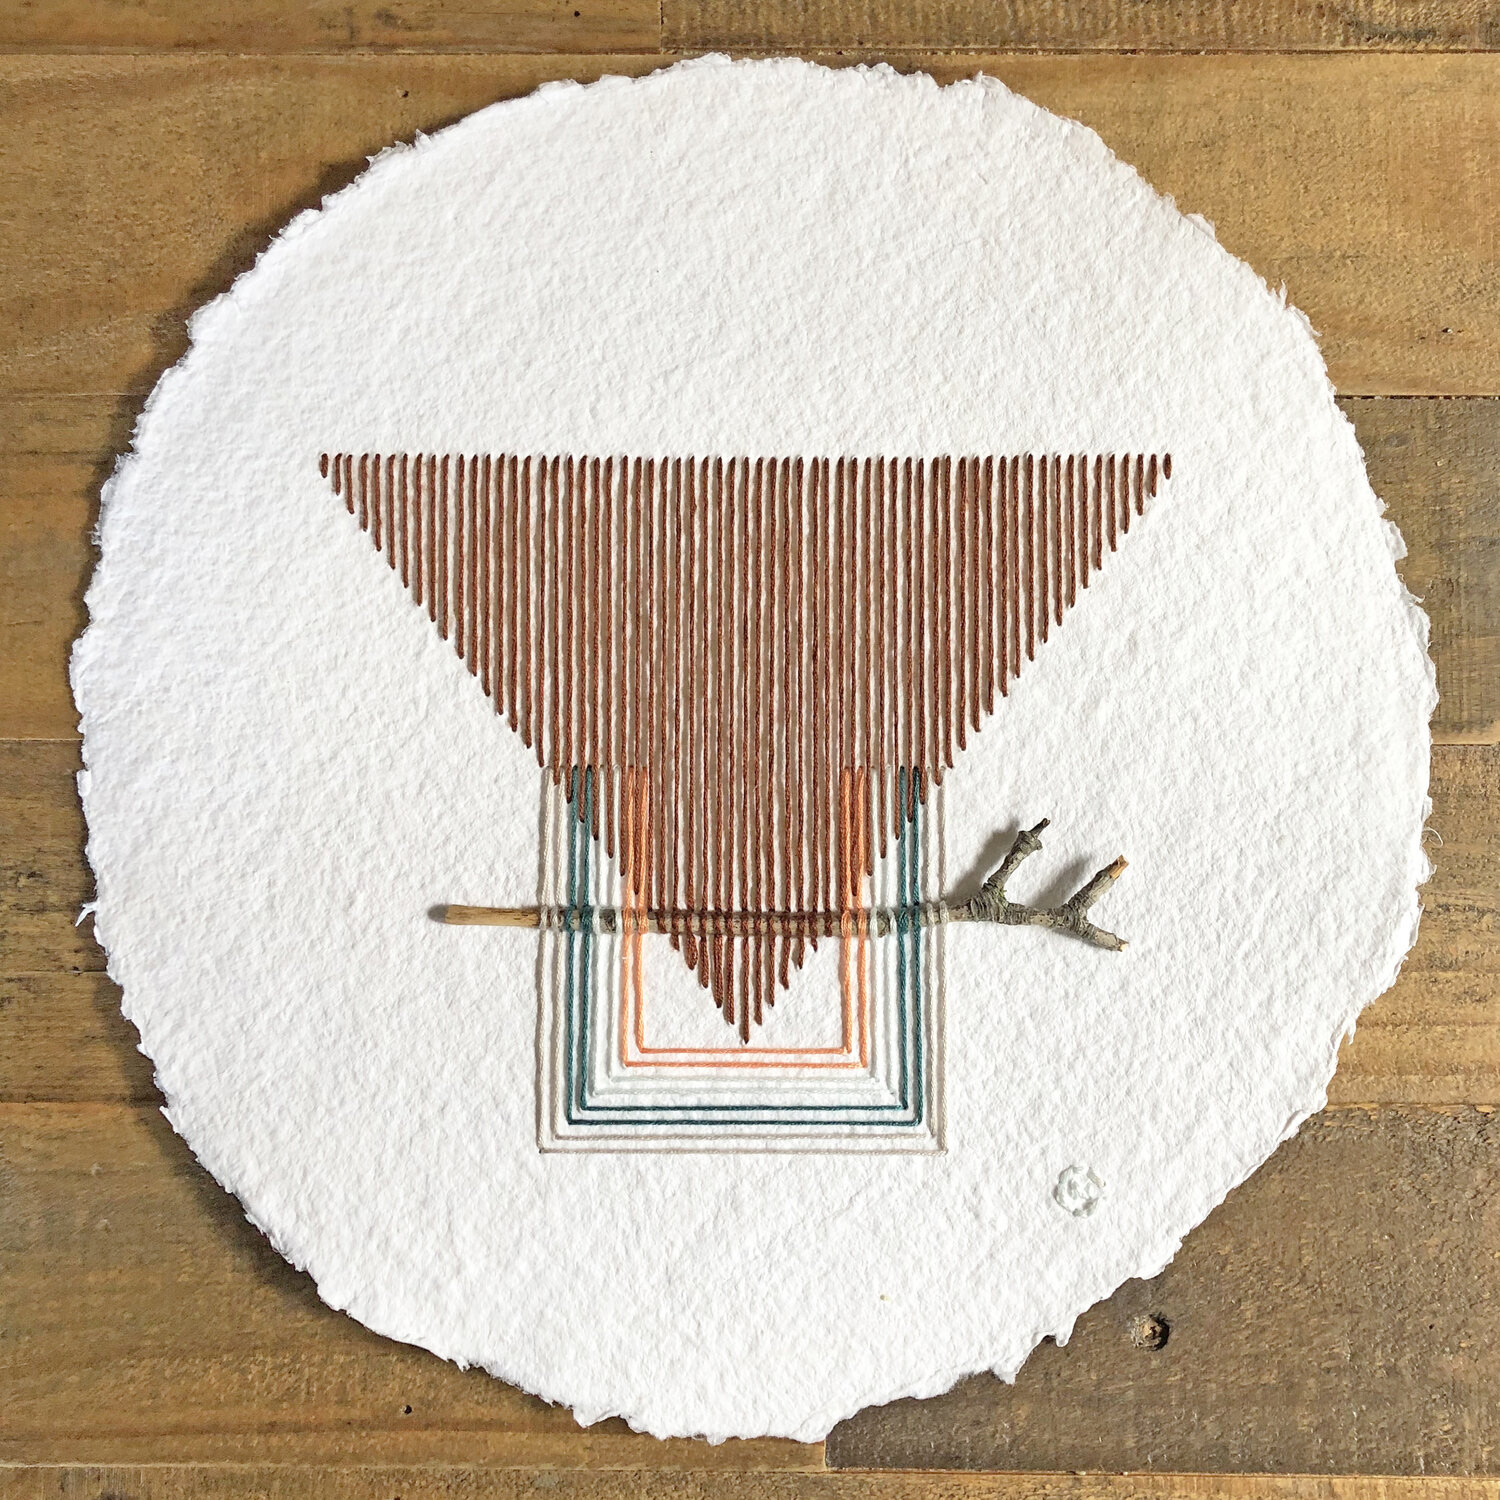 Precise Angular Stitches Encase Found Twigs in Natalie Ciccoricco's New Embroideries